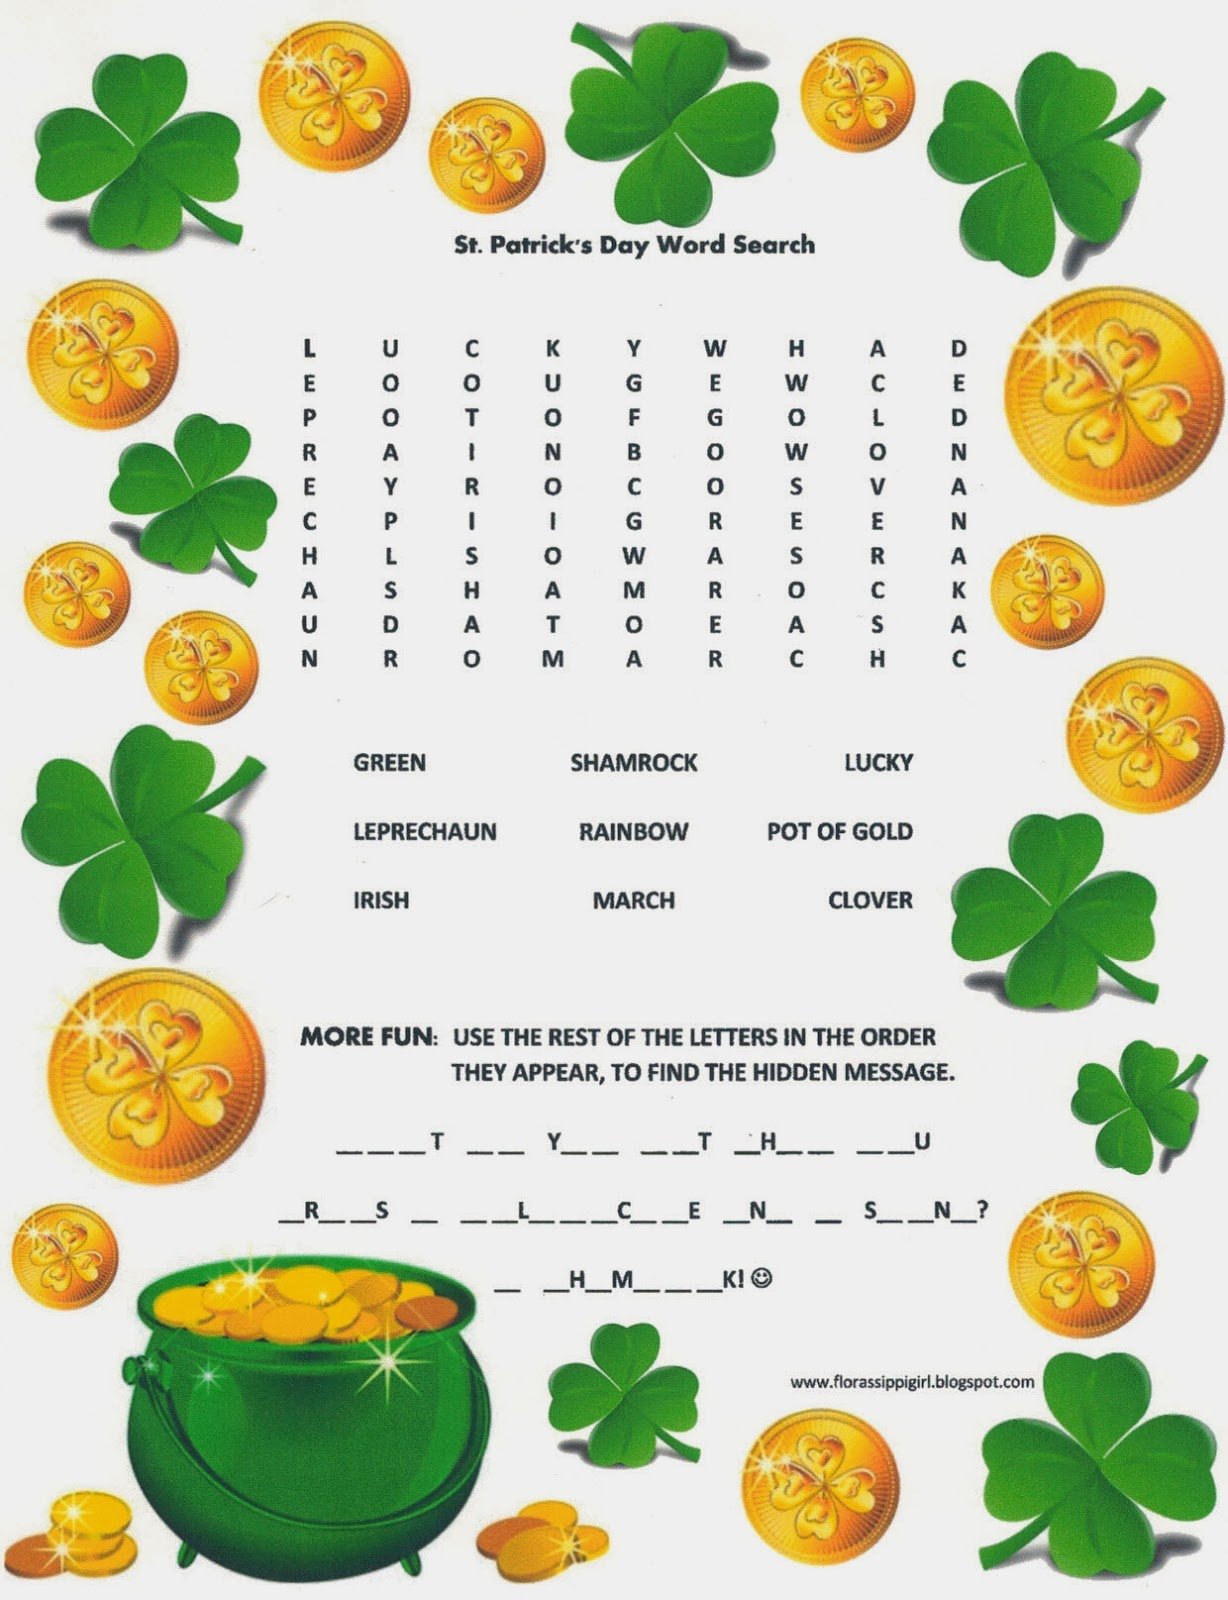 Florassippi Girl St Patrick S Day Word Search